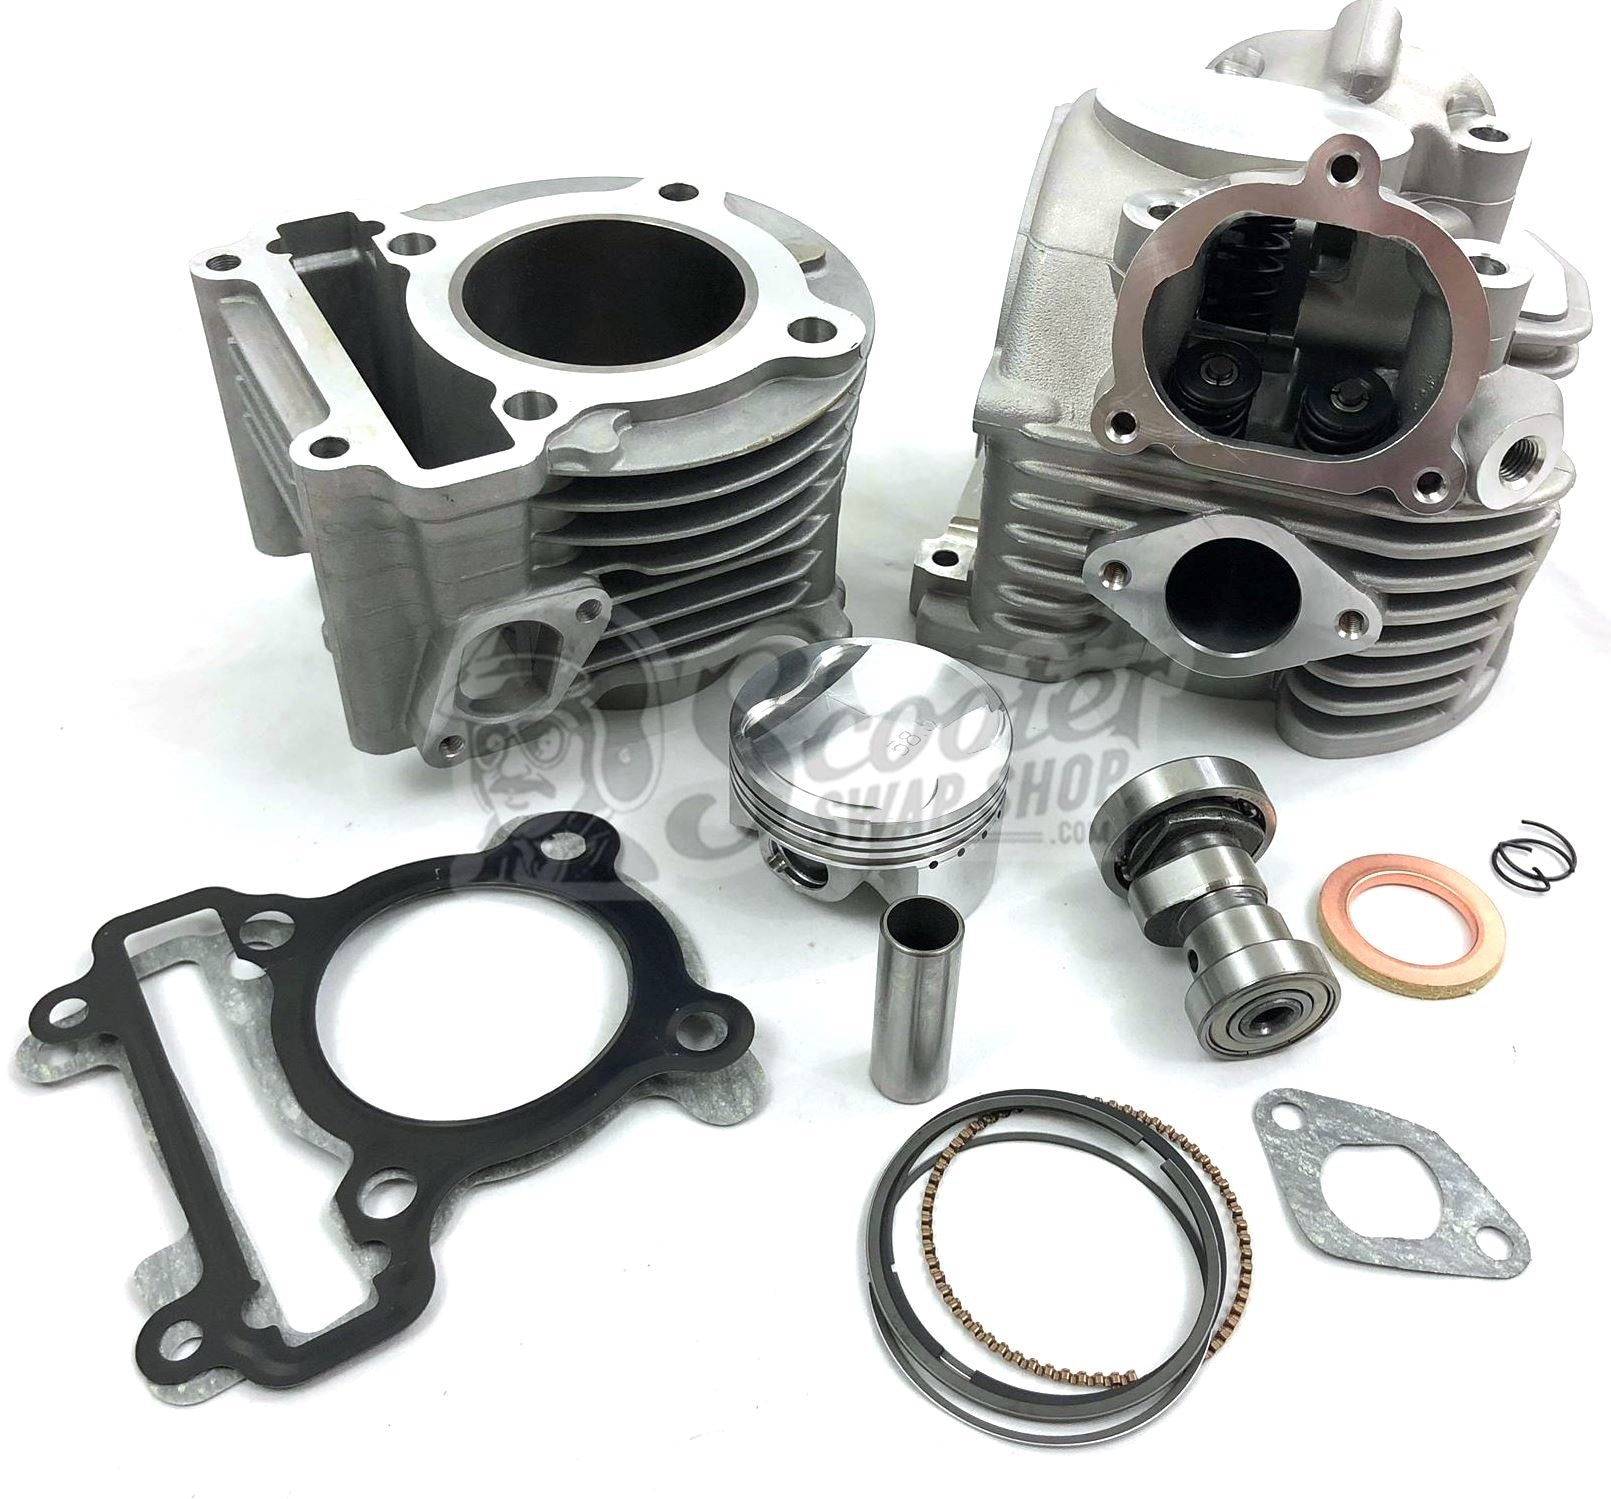 Zuma 125 big bore kit/cam/big valve head package 155CC